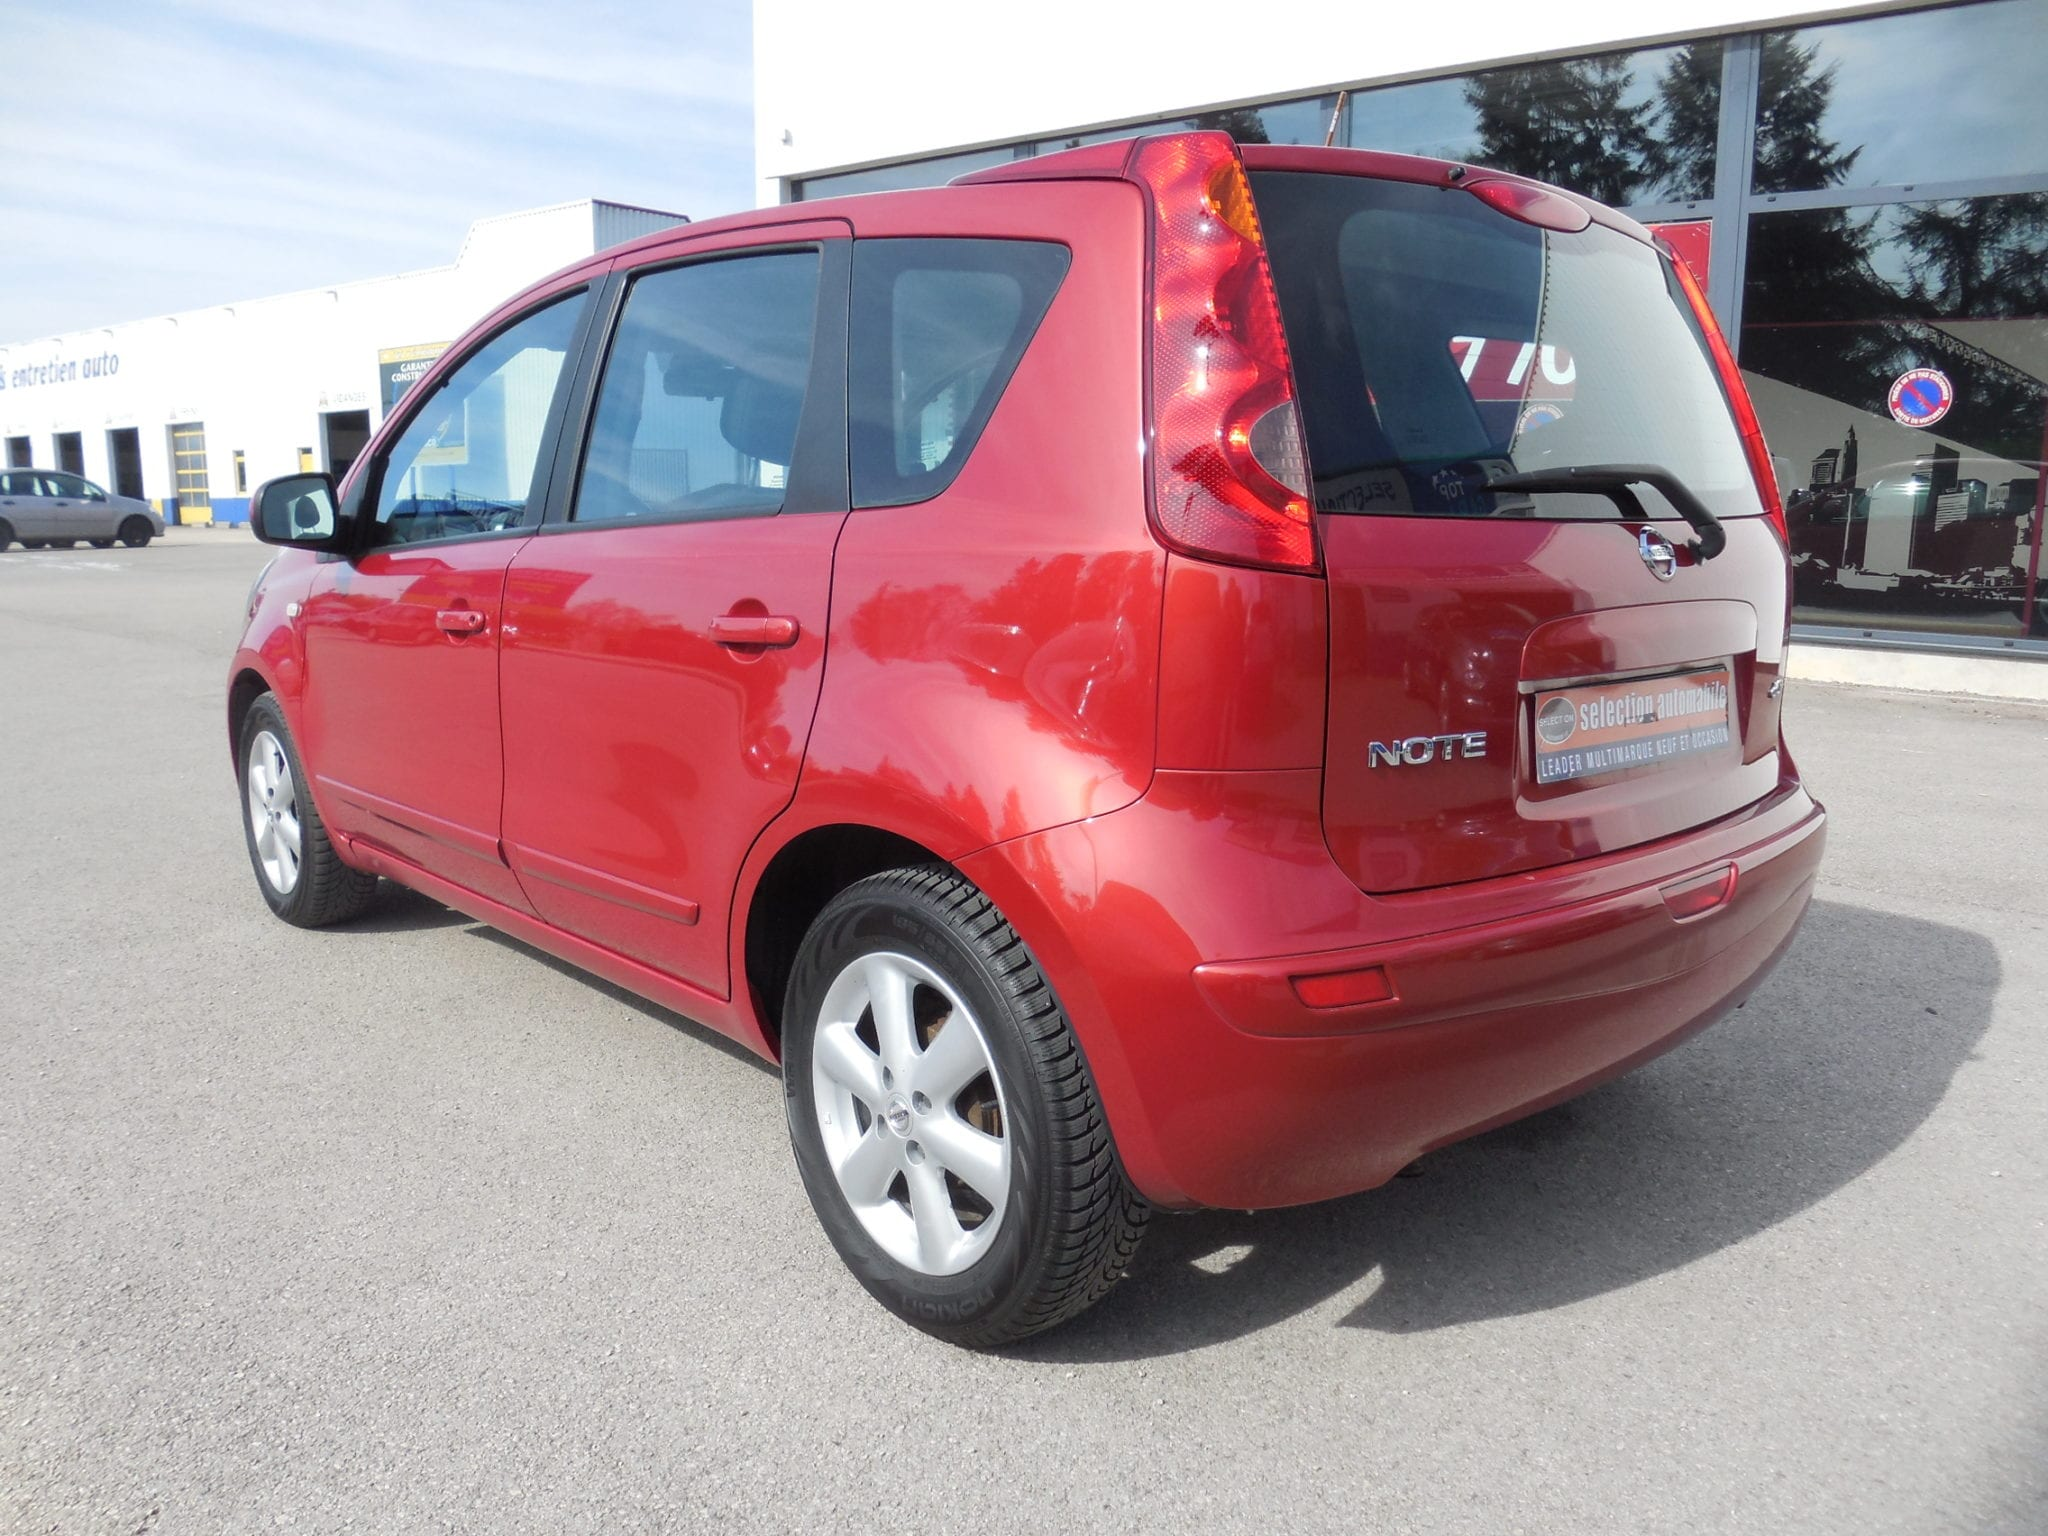 Nissan note 1.5 dci 86 - Image 3